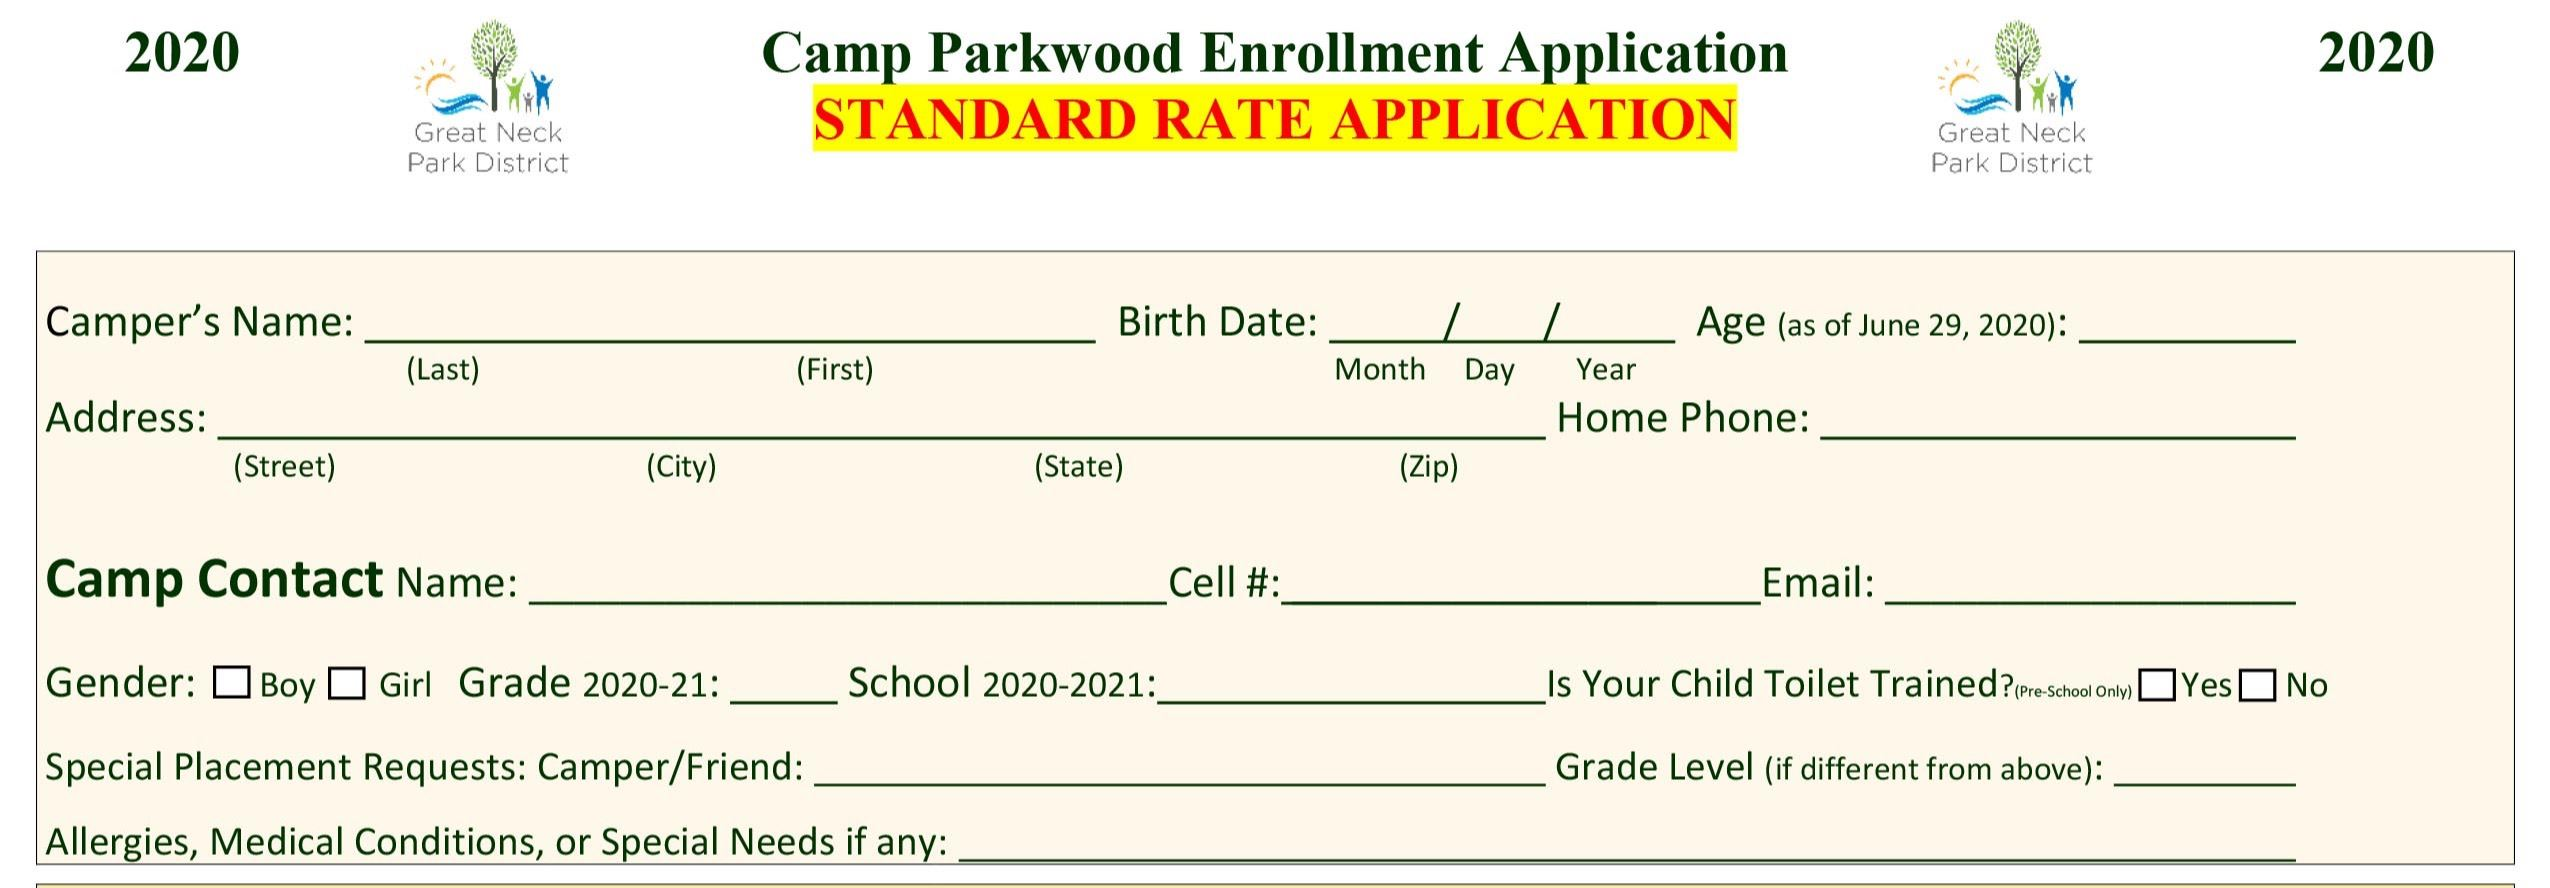 2020 Standard Rate Application-1